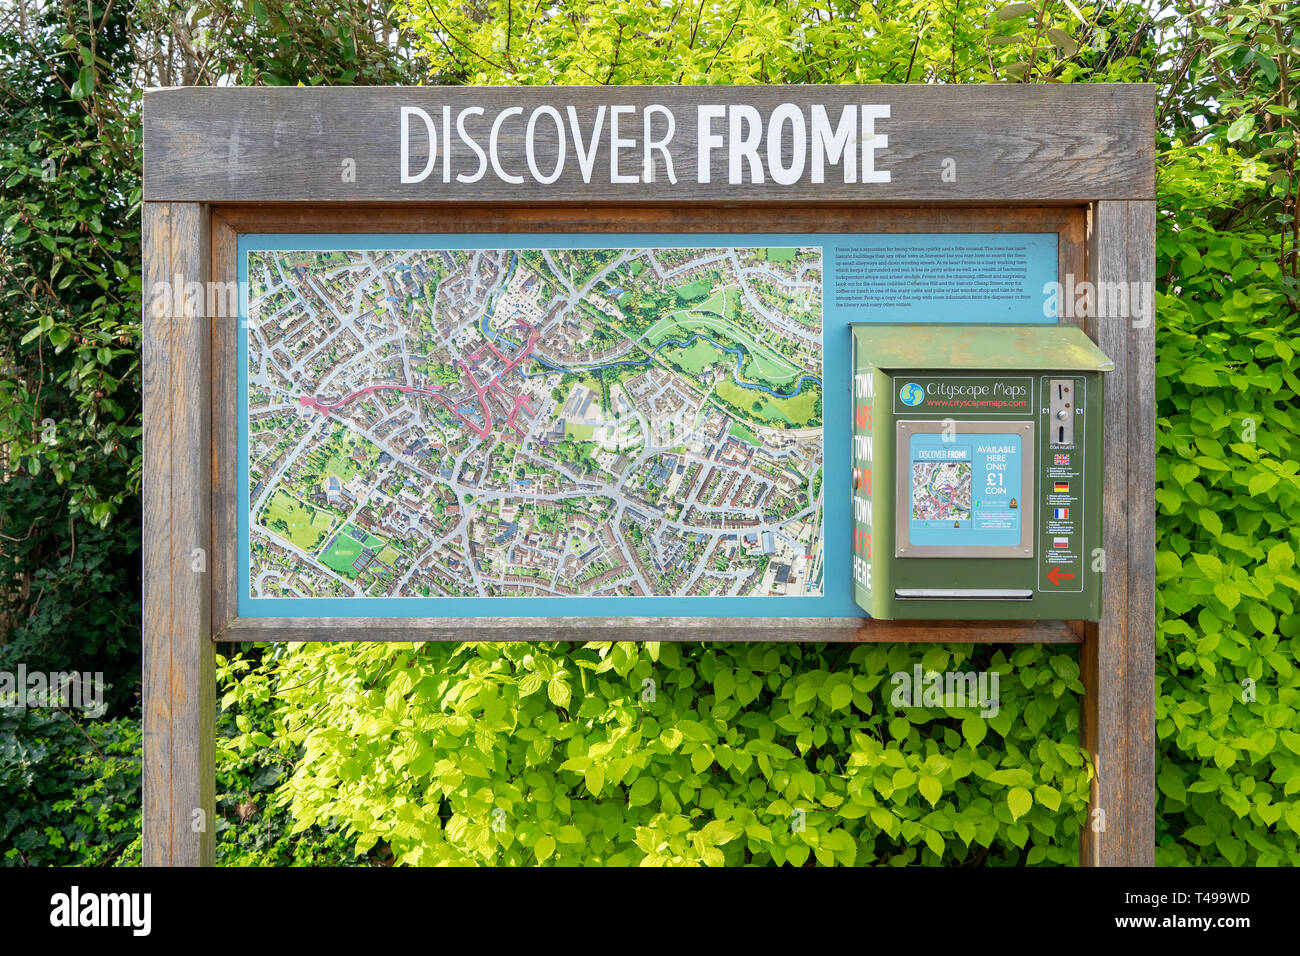 Street map and tourist guide of Frome UK - Stock Image